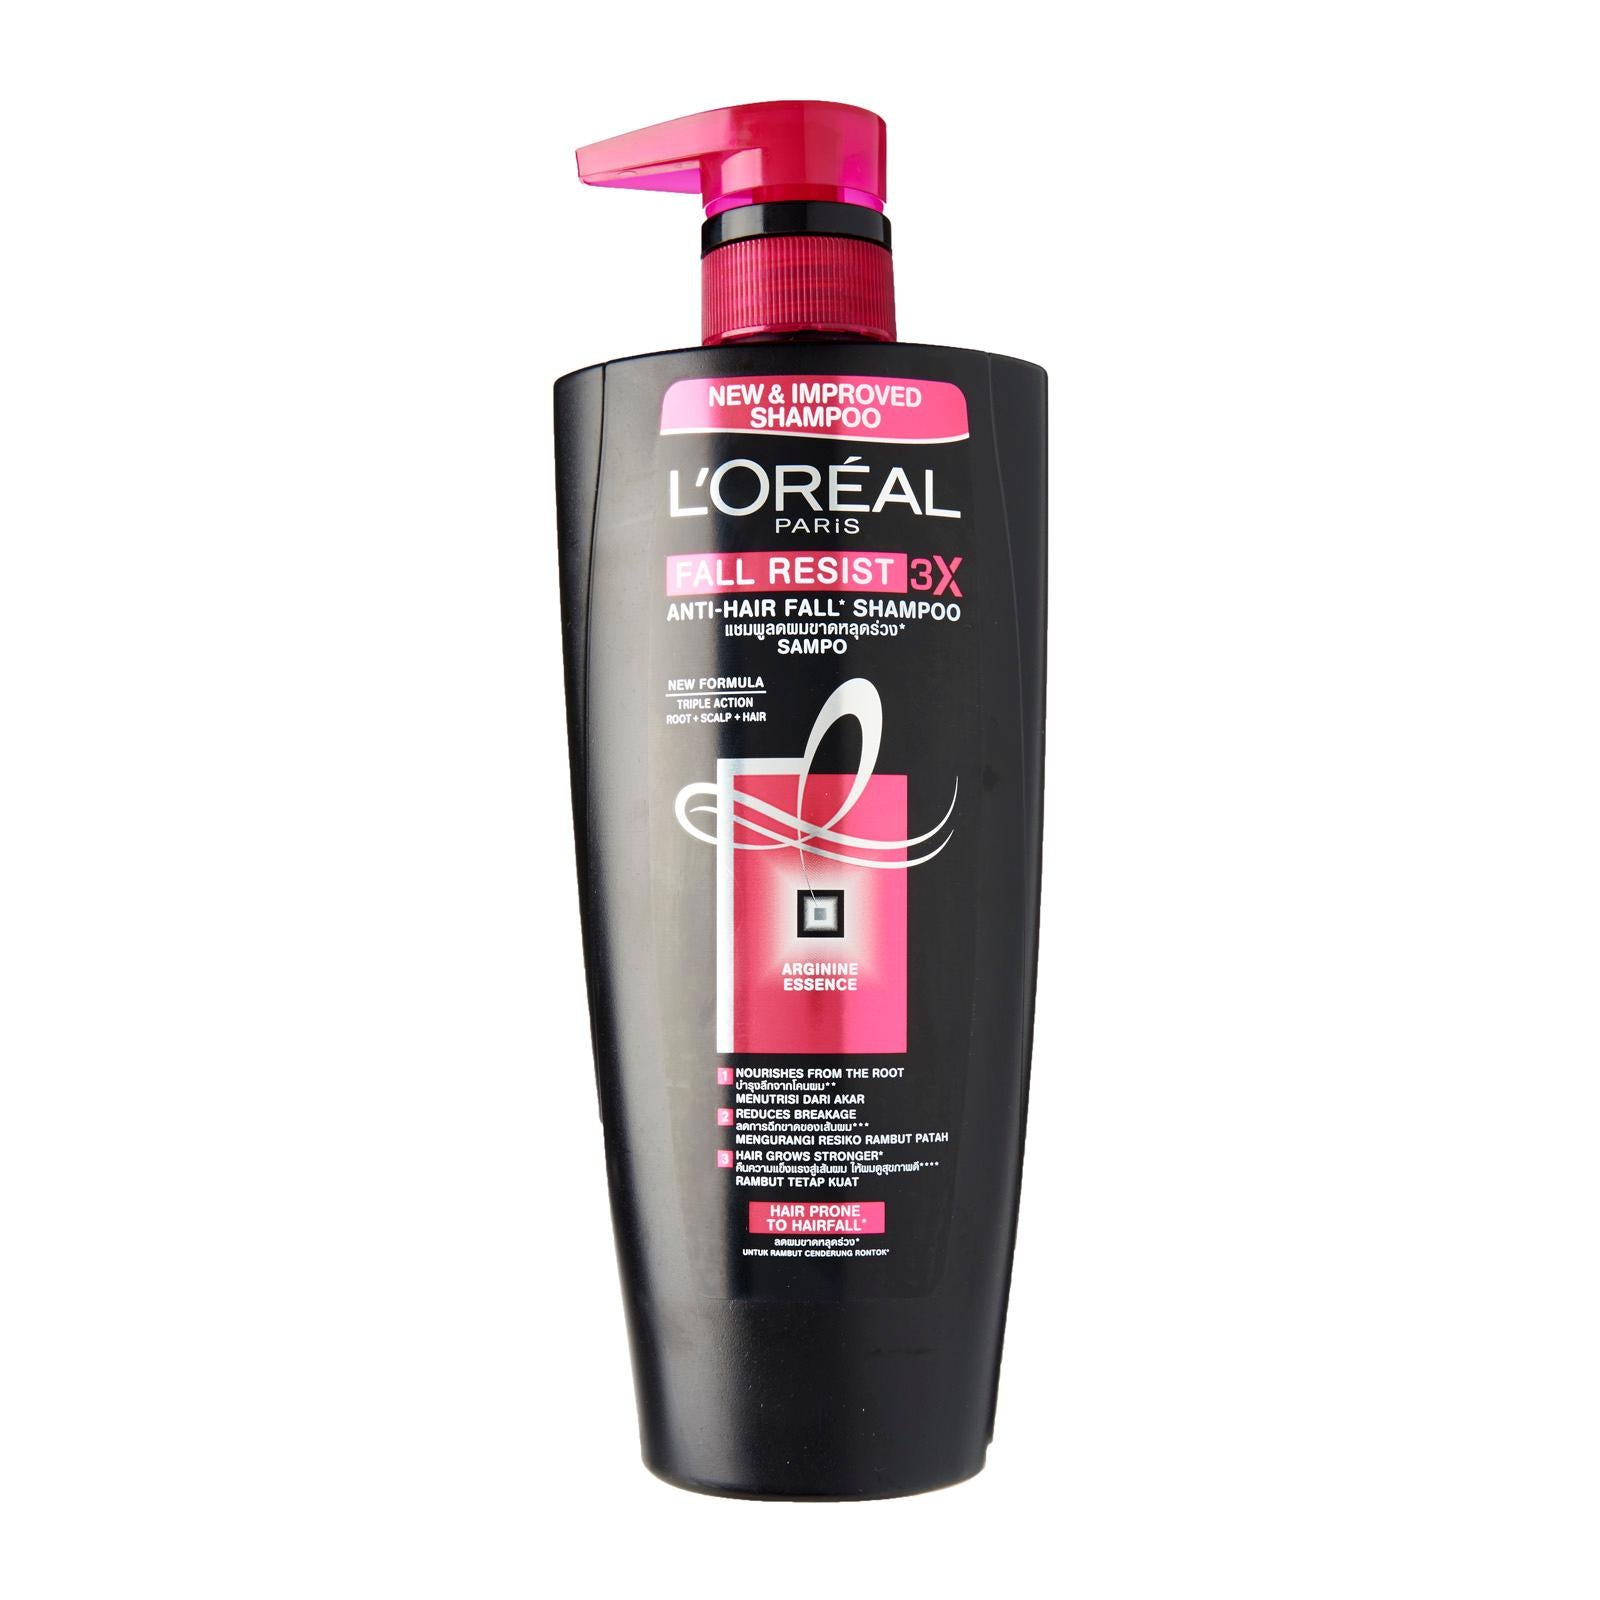 L'Oreal Fall Repair Anti-Hair Fall Shampoo 650 ml